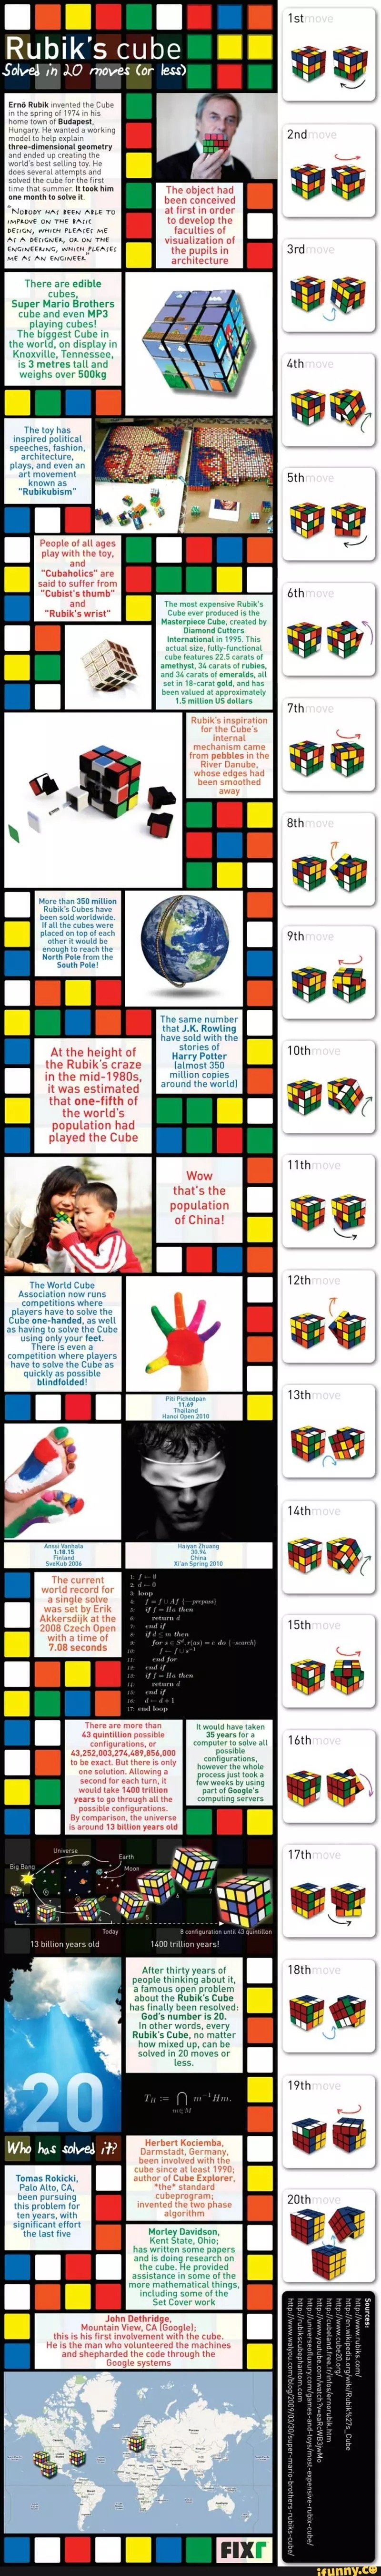 Pin by Mikaiah Harper on Life Hacks Rubik's cube solve